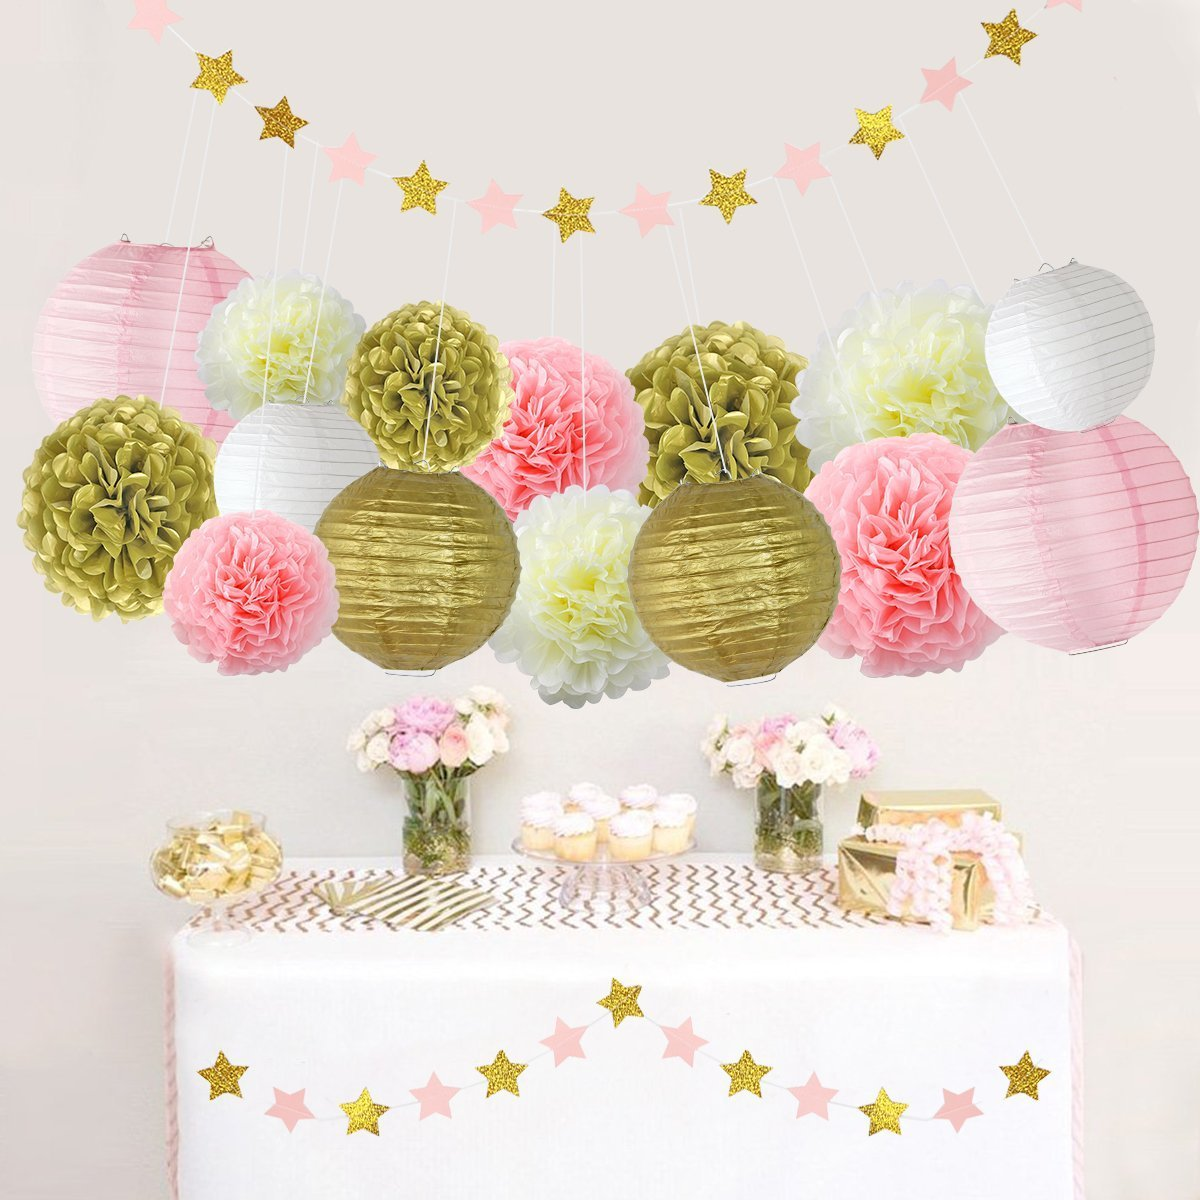 Amazon.com: Pink and Gold Party Decorations, Pom Poms Flowers Kit + ...